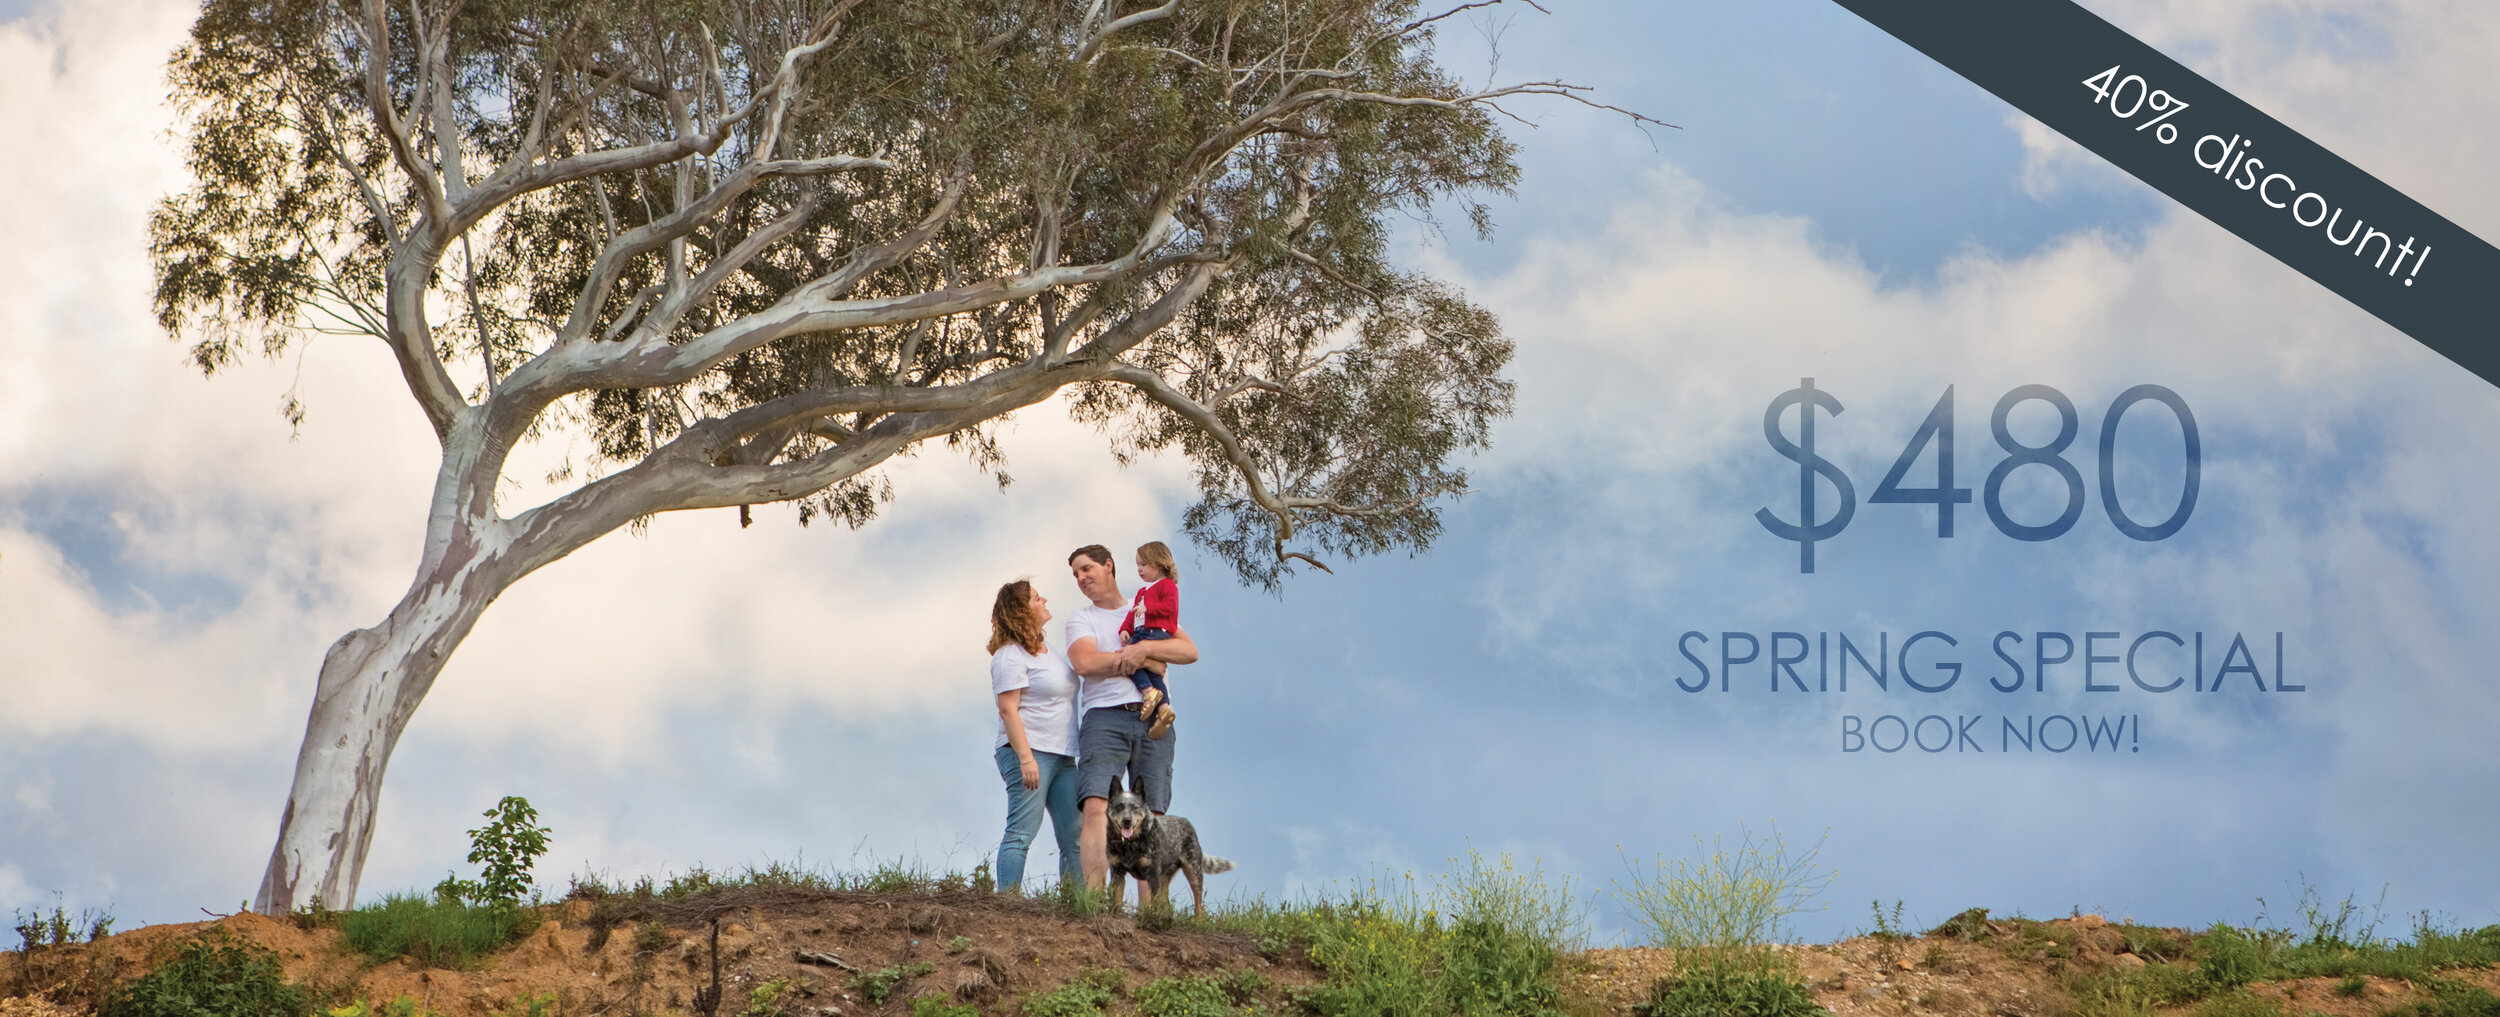 """Family Special Deal  includes pre-consult, 1 hour session, viewing session and your choice of 10 digital images, and either 3 small 5x7"""" prints or 1 small framed print, valued at $800. Conditions apply. For a limited time only."""